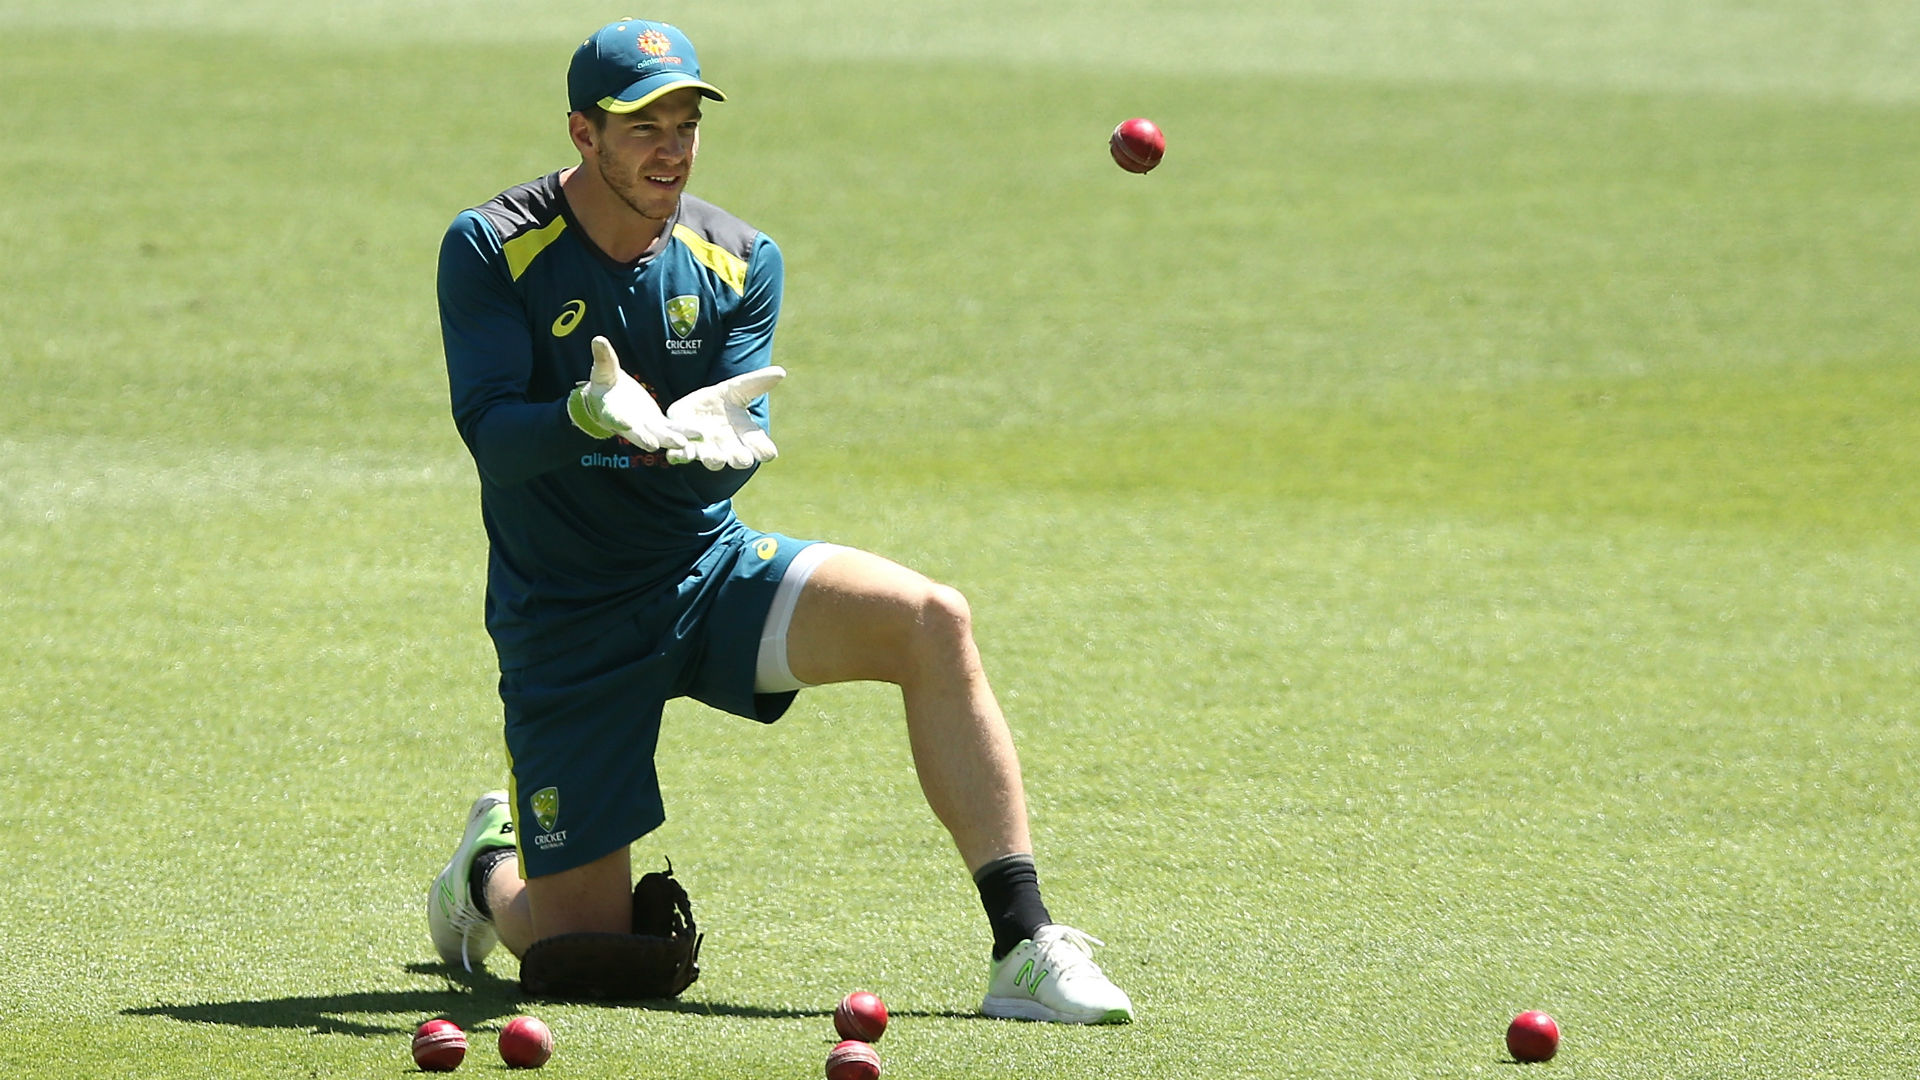 Tim Paine said Mitchell Starc's place in the Australia side was never really in doubt for the second Test.